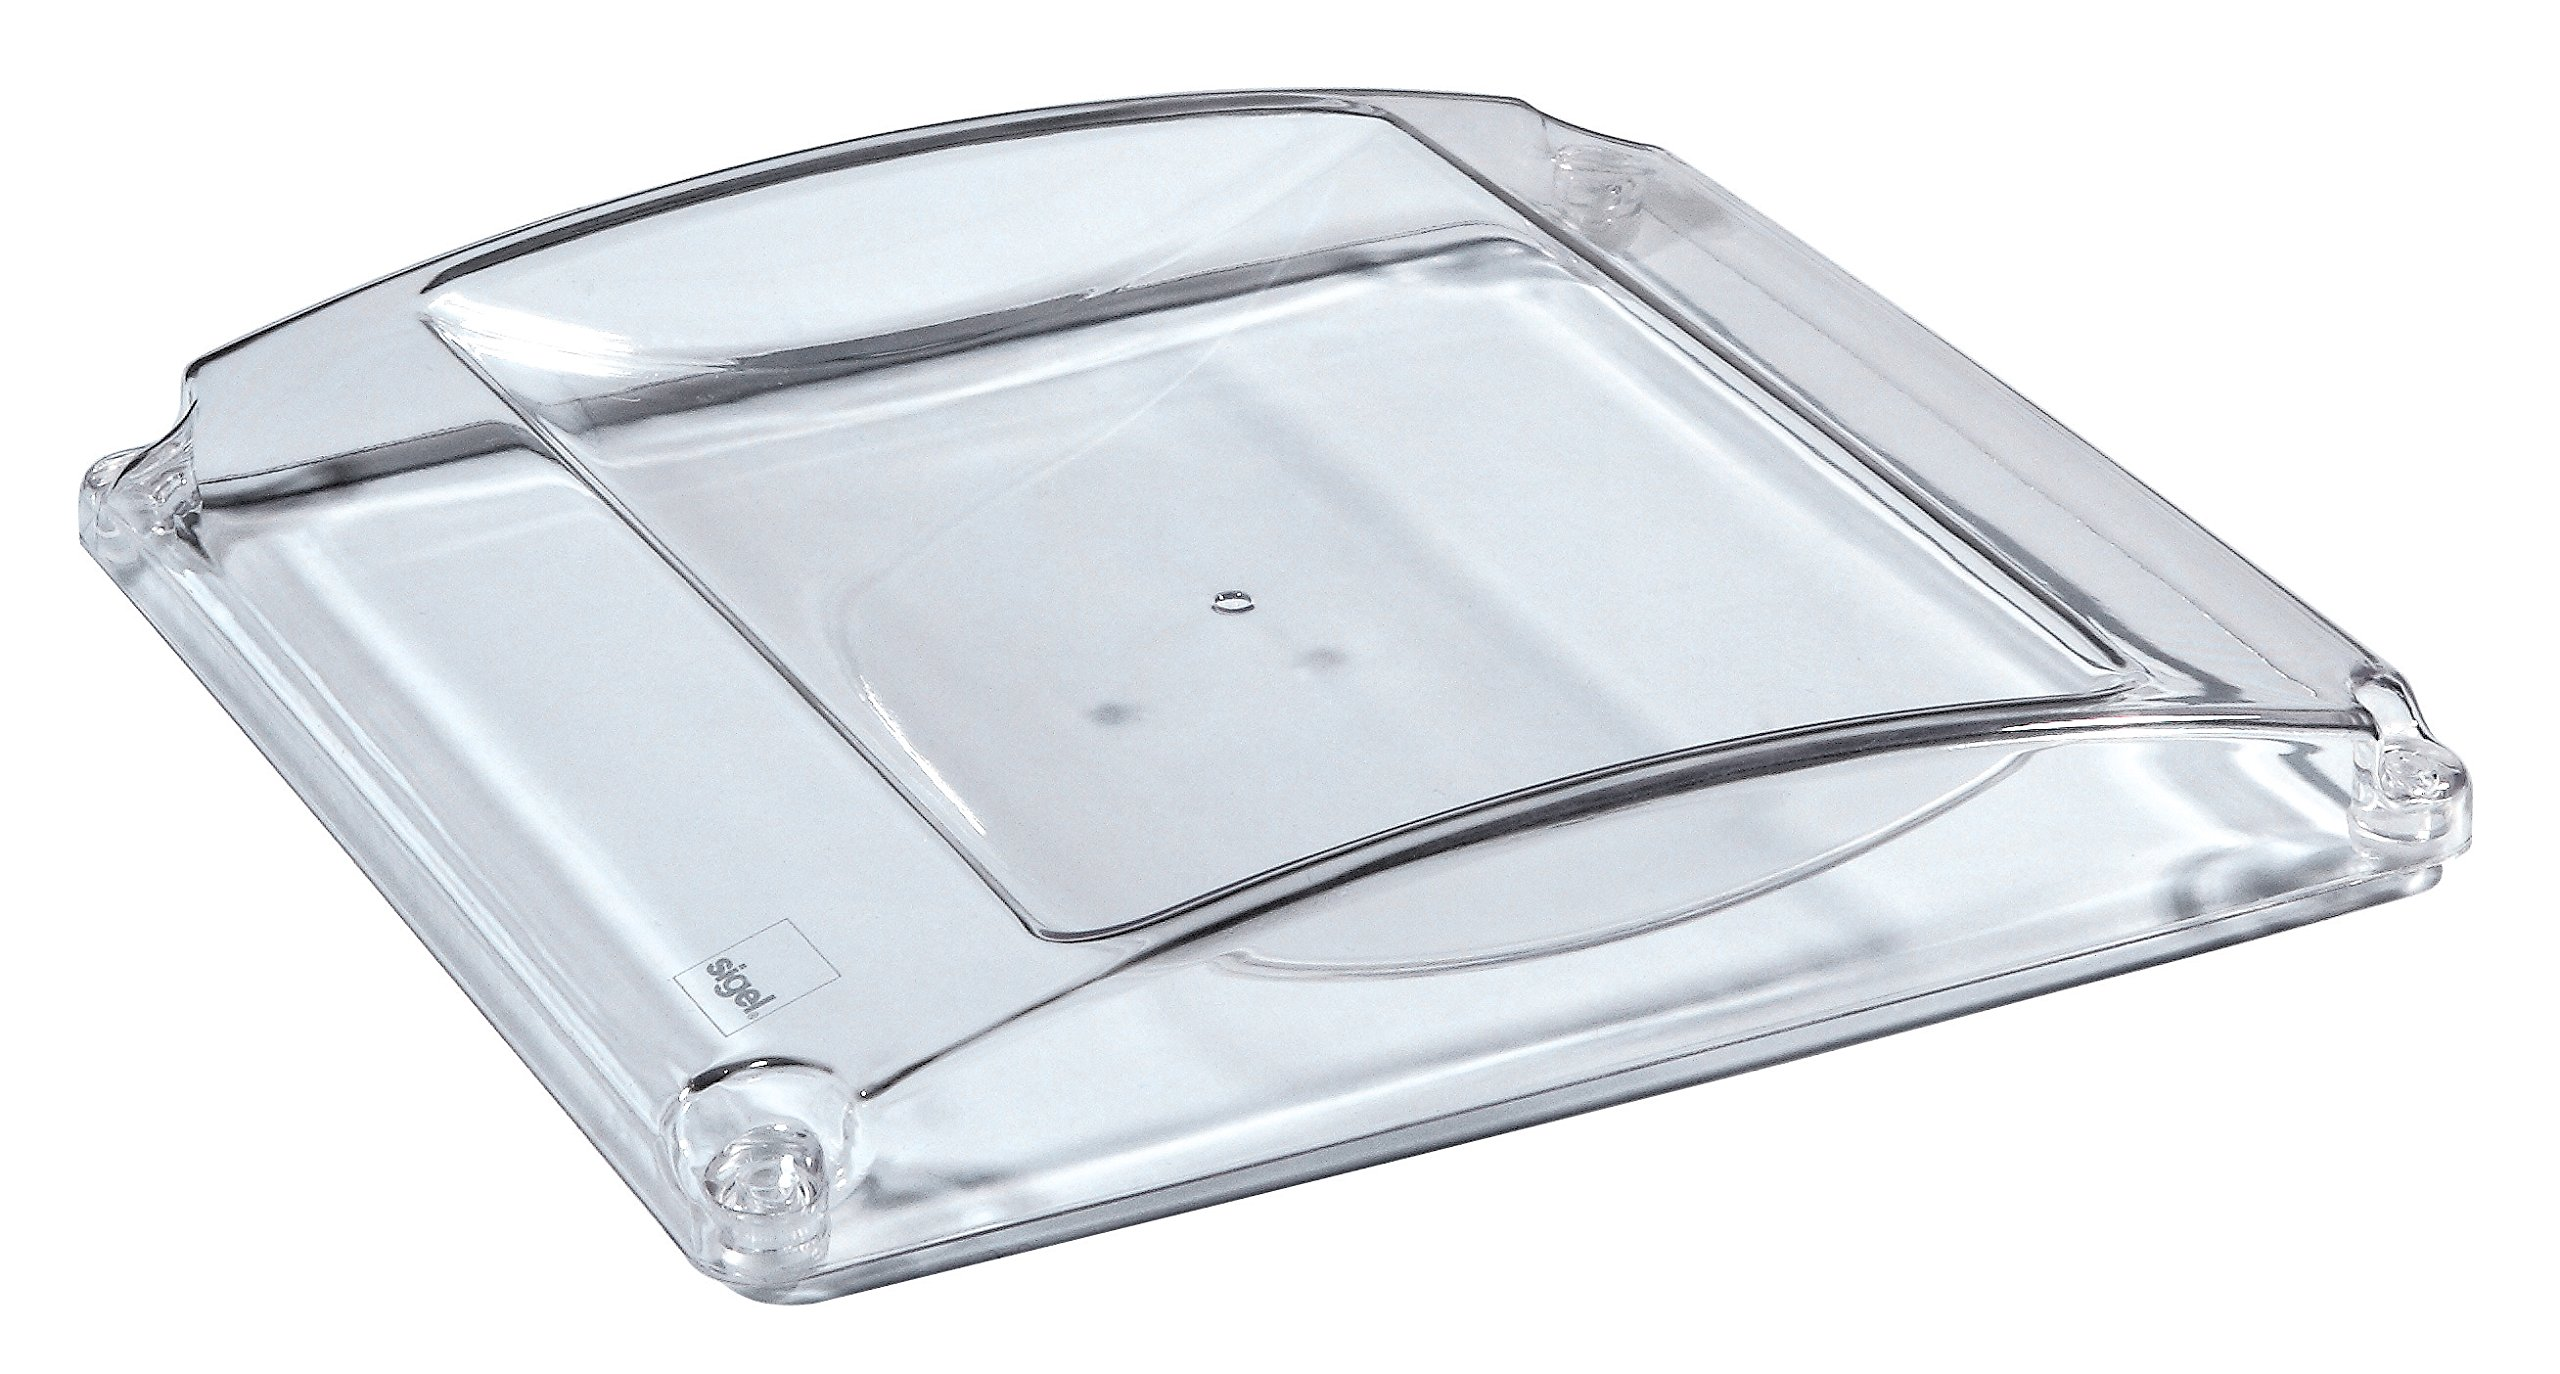 Sigel ZB141 Money tray Standard, clear, 7.09 x 7.48 x 1.18 inches